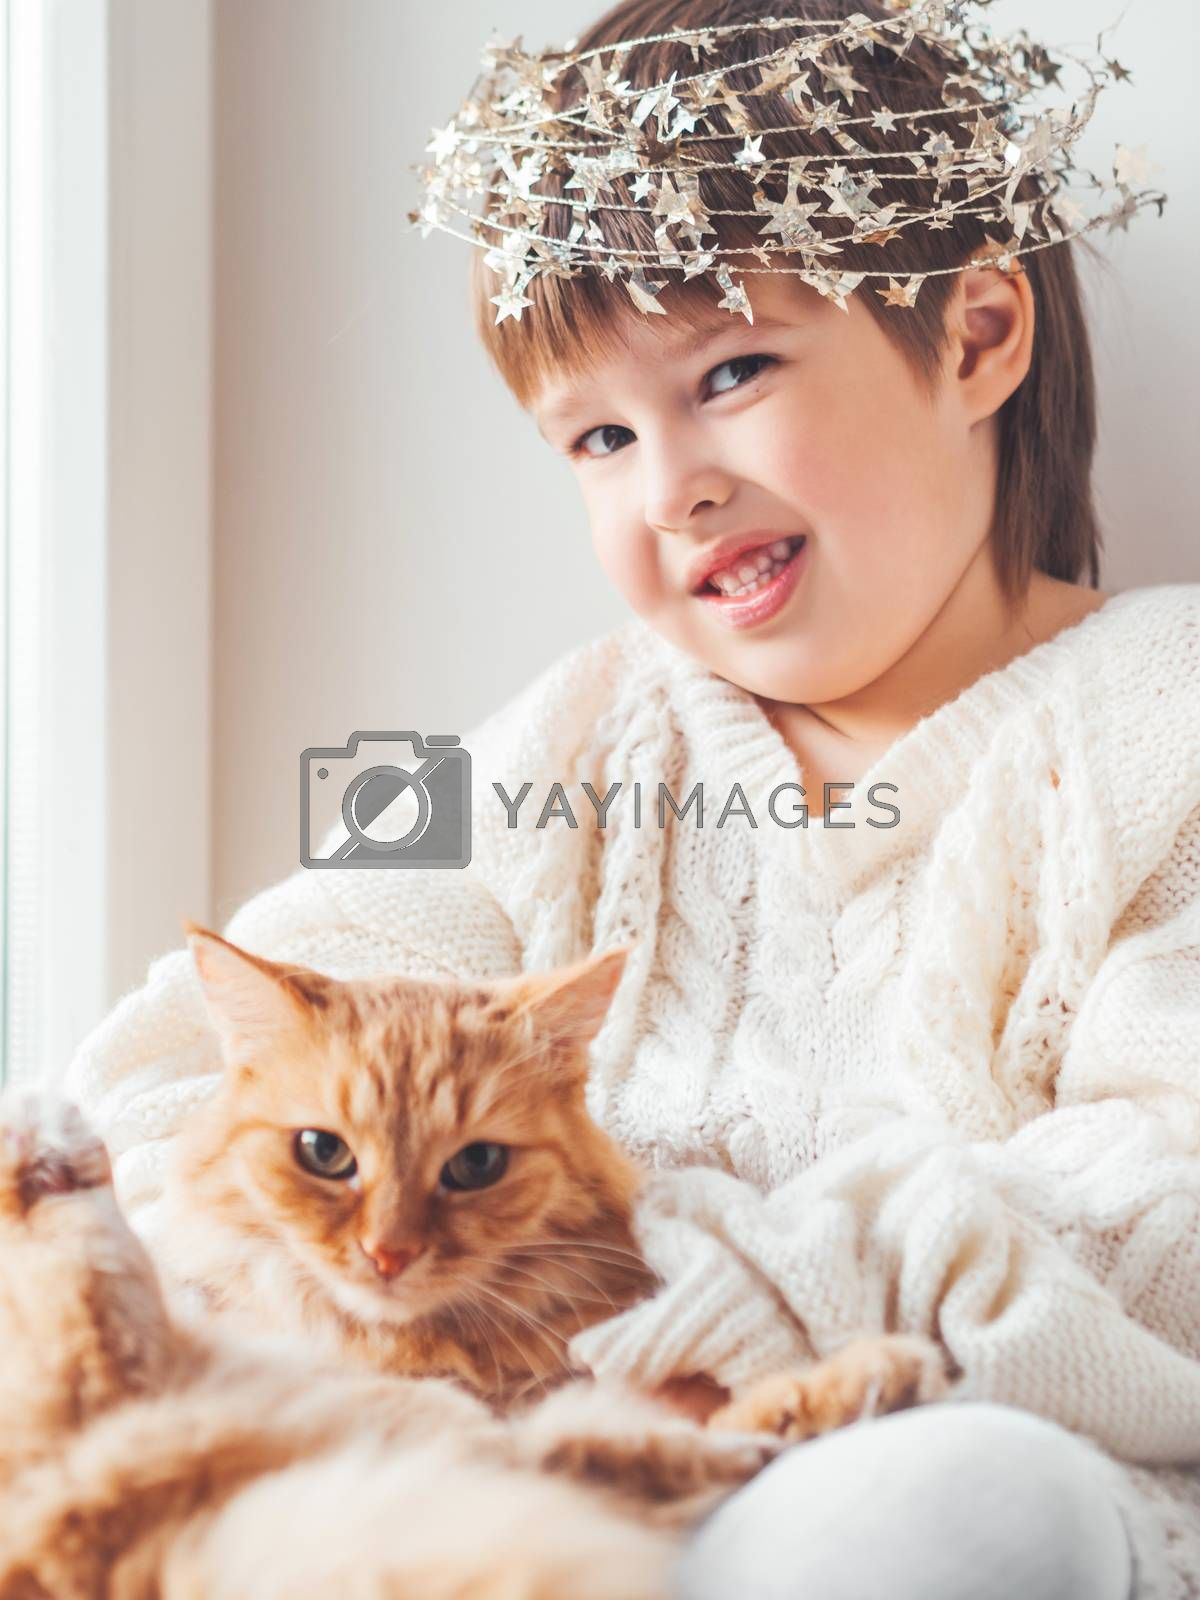 Kid with decorative star tinsel for Christmas tree hugs cute ginger cat. Boy in cable knit oversized sweater with fluffy pet. Winter holiday spirit. New year.